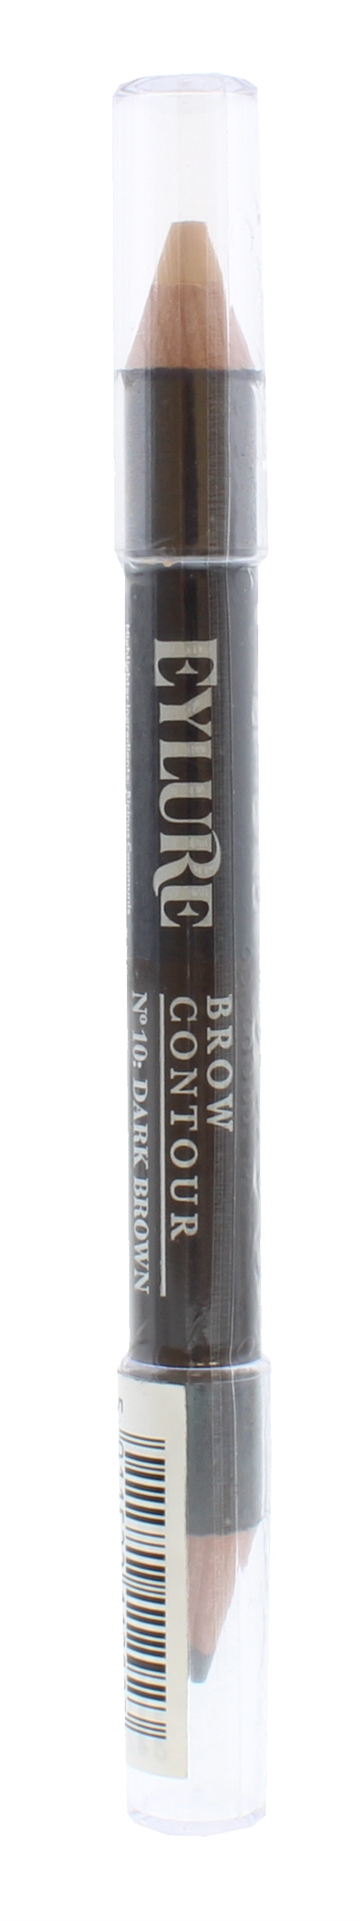 Eylure Brow Contour Duo Pencil Dark Brwn